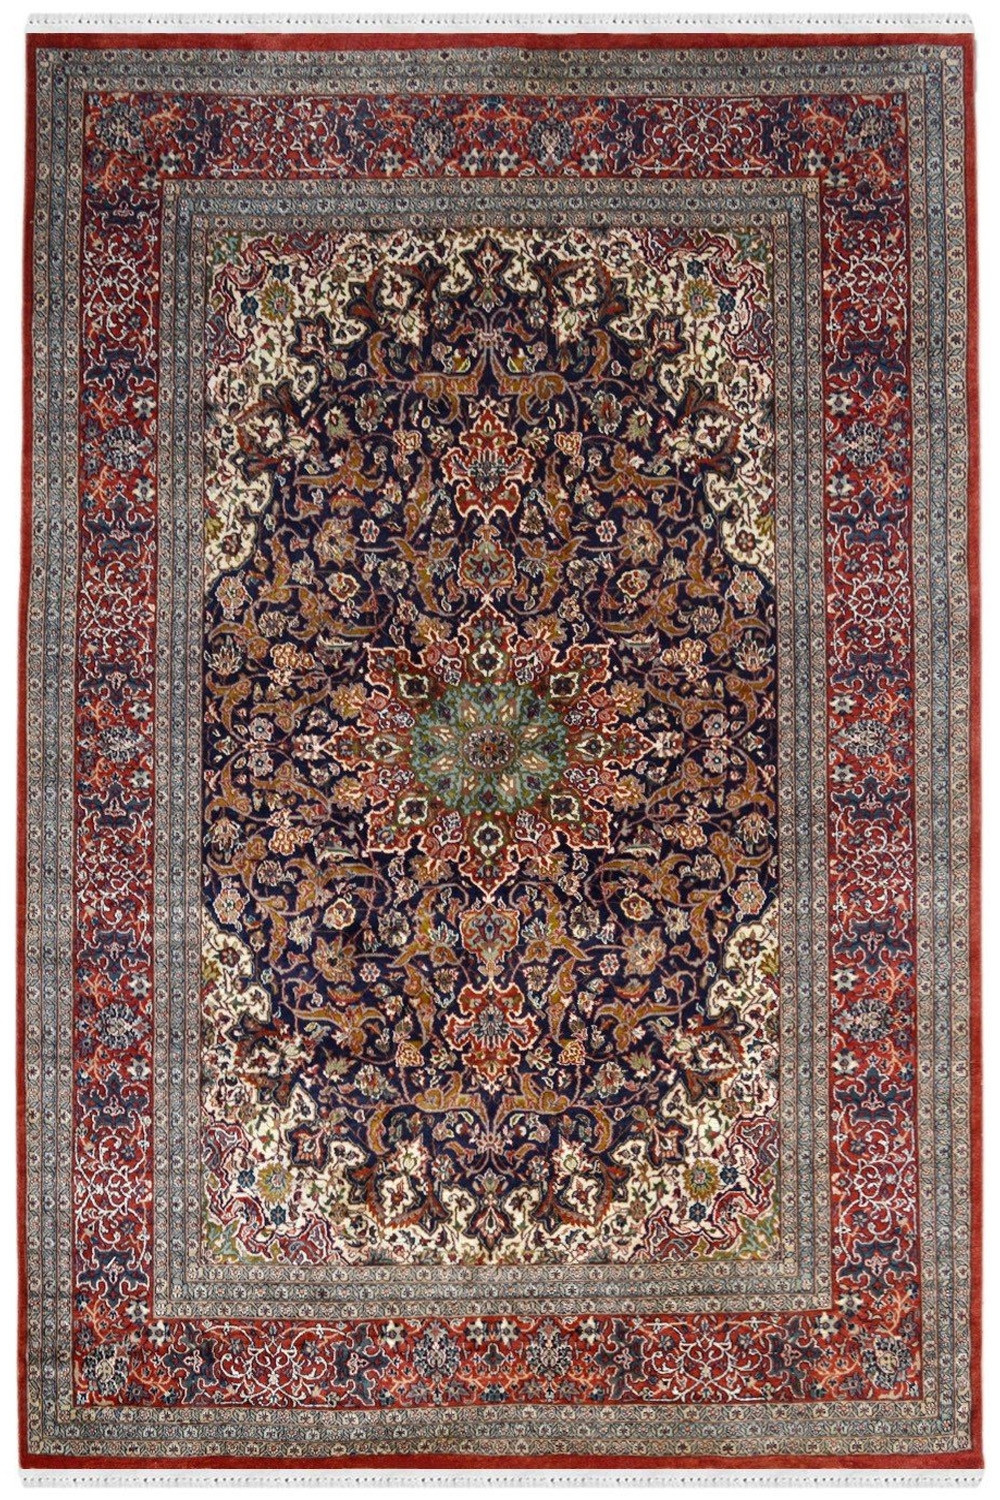 Buy Beautiful Neel Chakra Ardabil Wool Rugs And Carpet